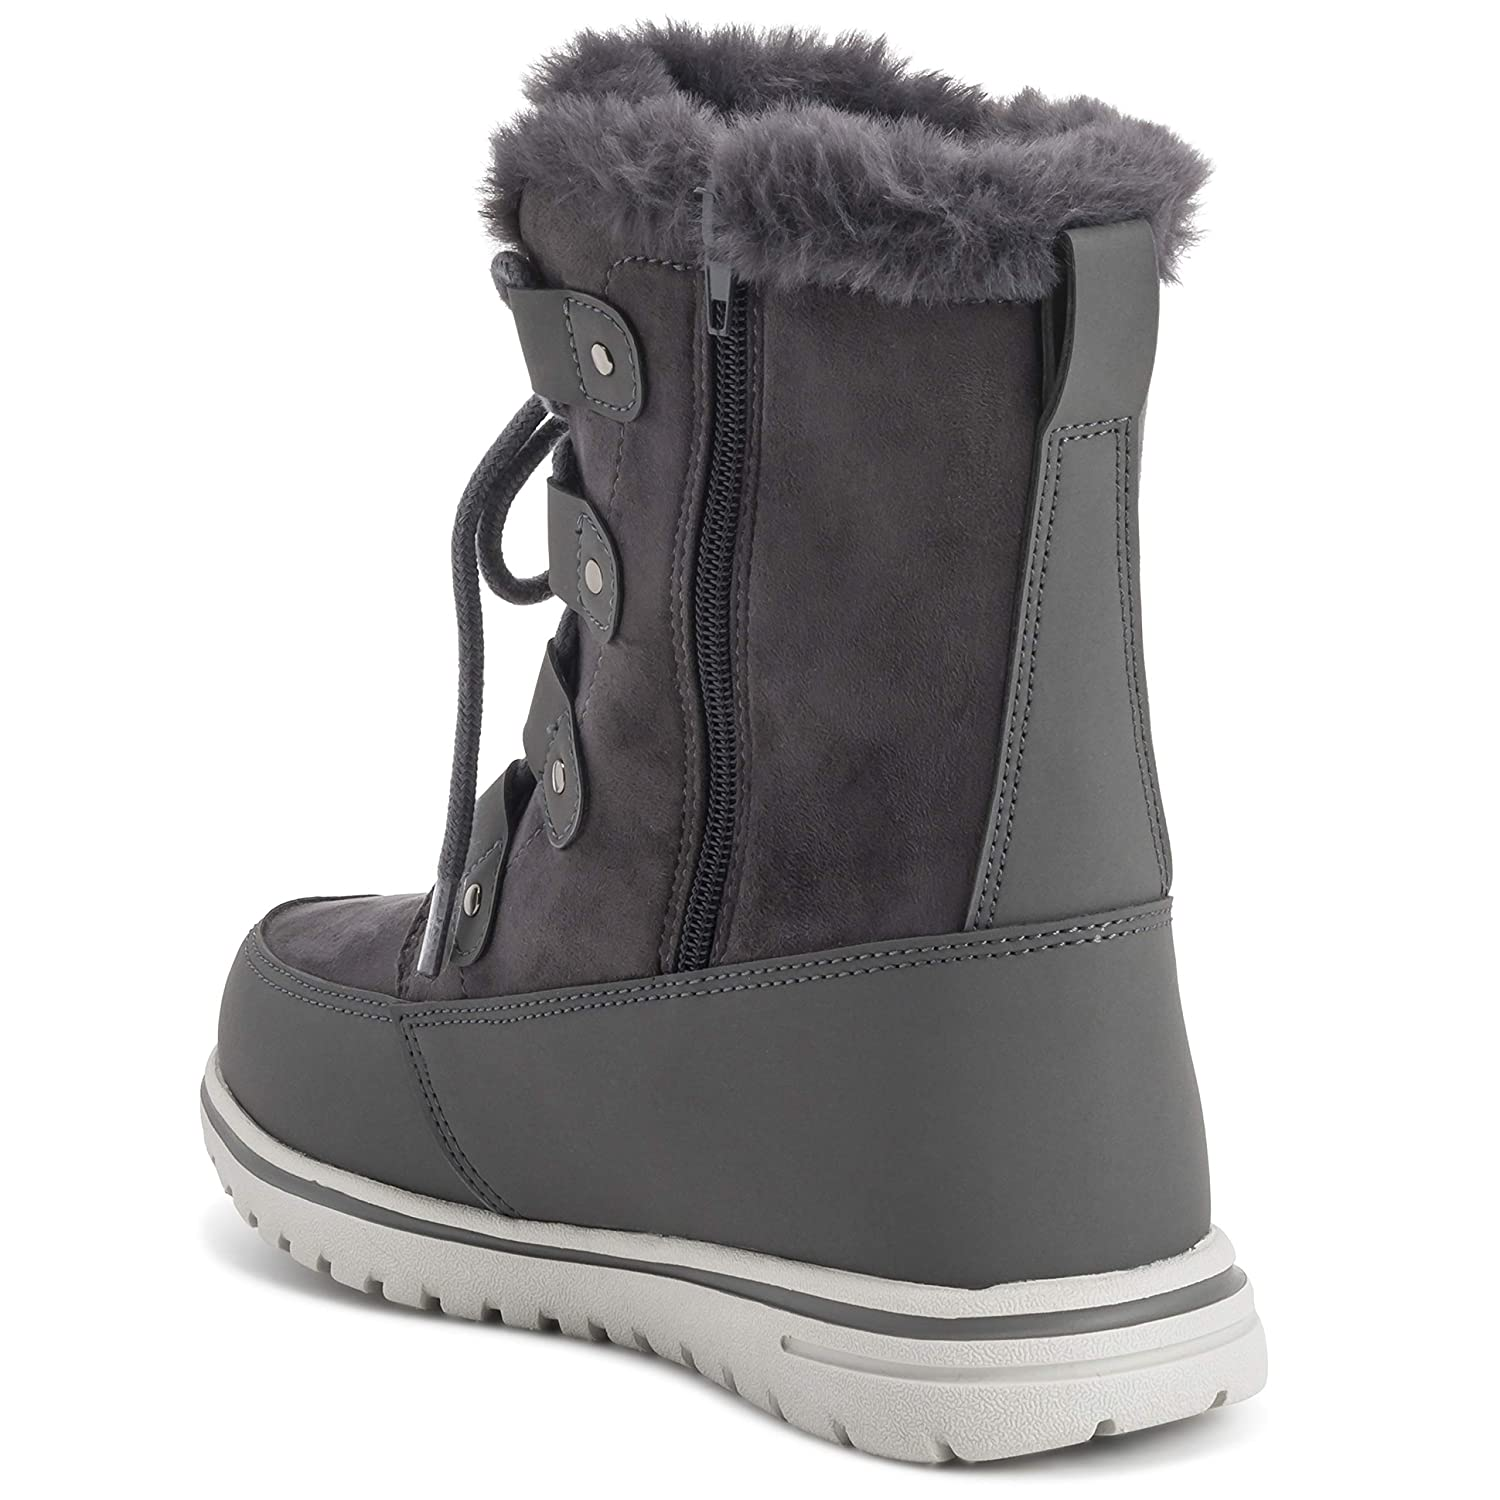 154c5048e Amazon.com | Polar Womens Waterproof Durable Snow Winter Hiking Fleece  Ankle Boots | Ankle & Bootie